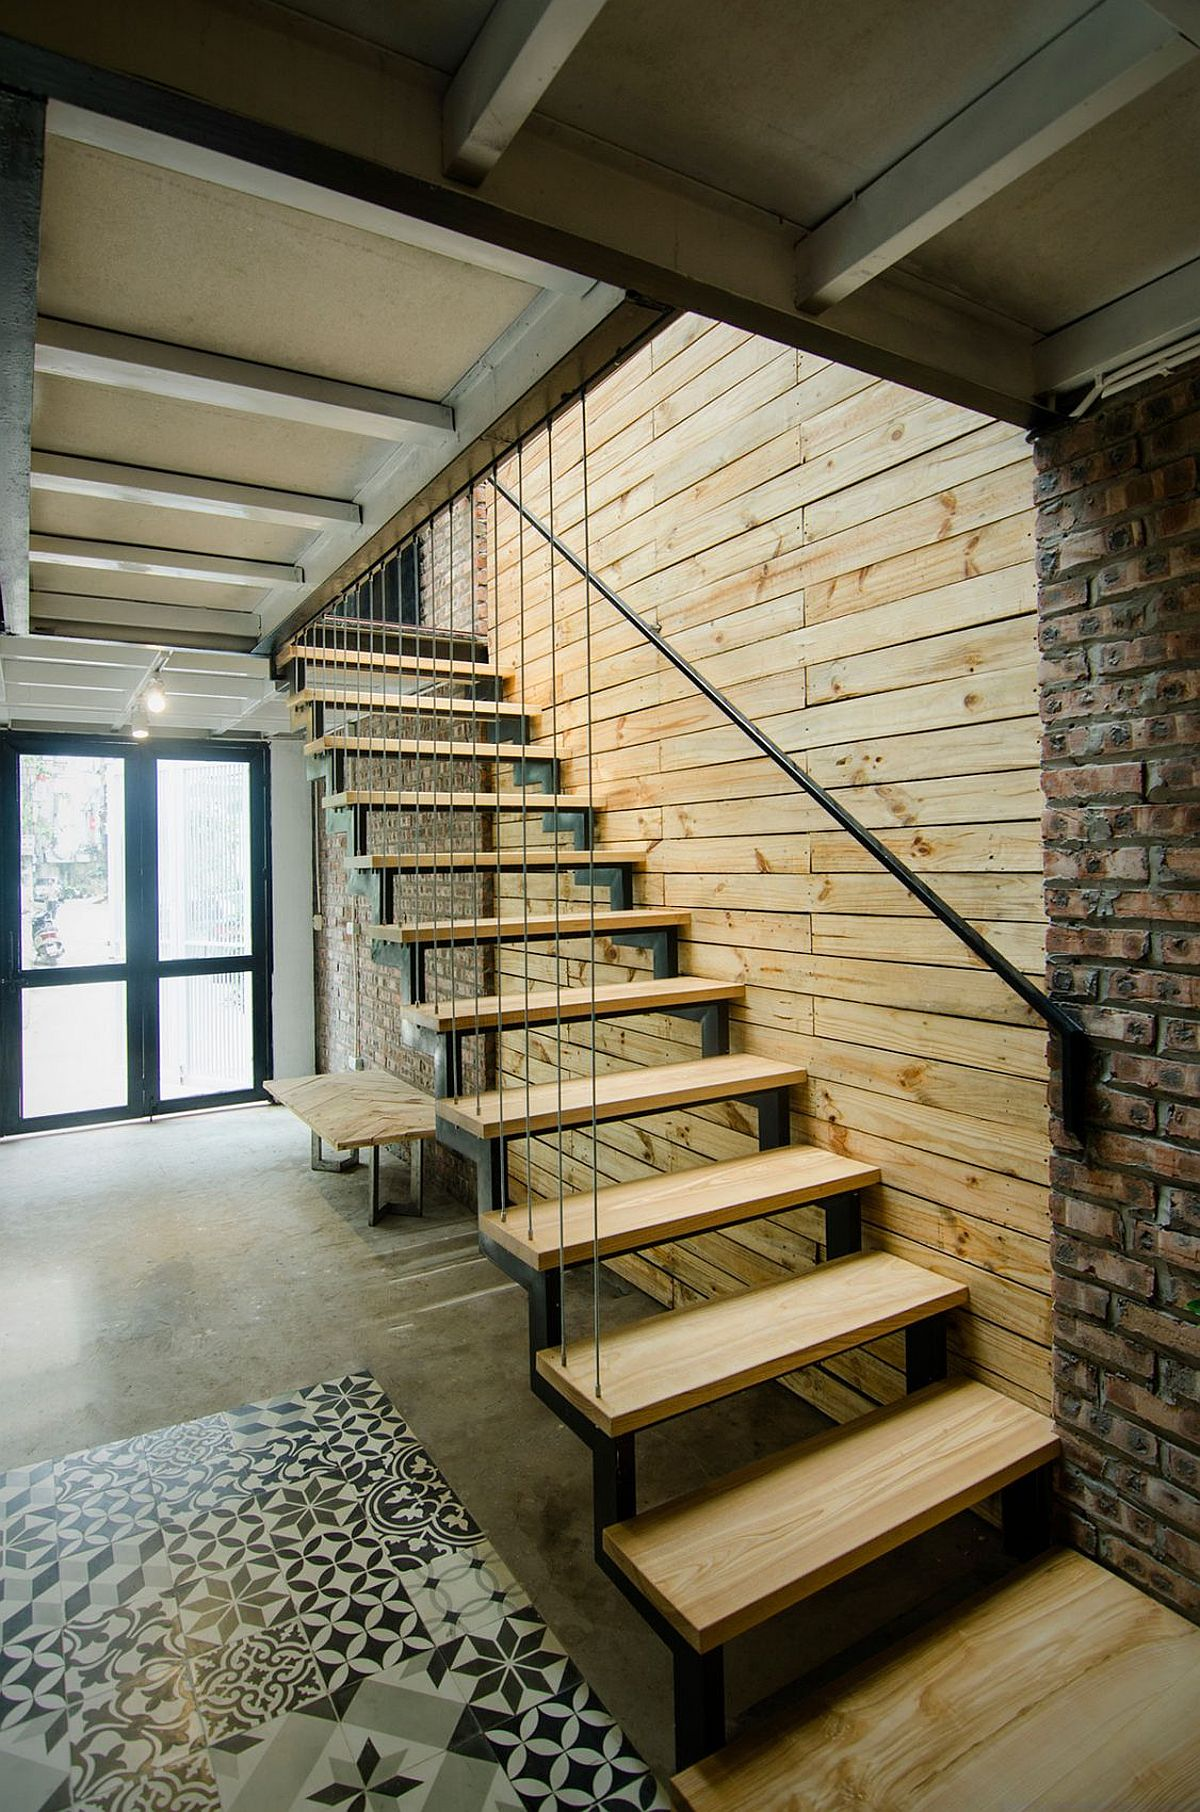 Simple design of the staircase and the house save time, space and resources